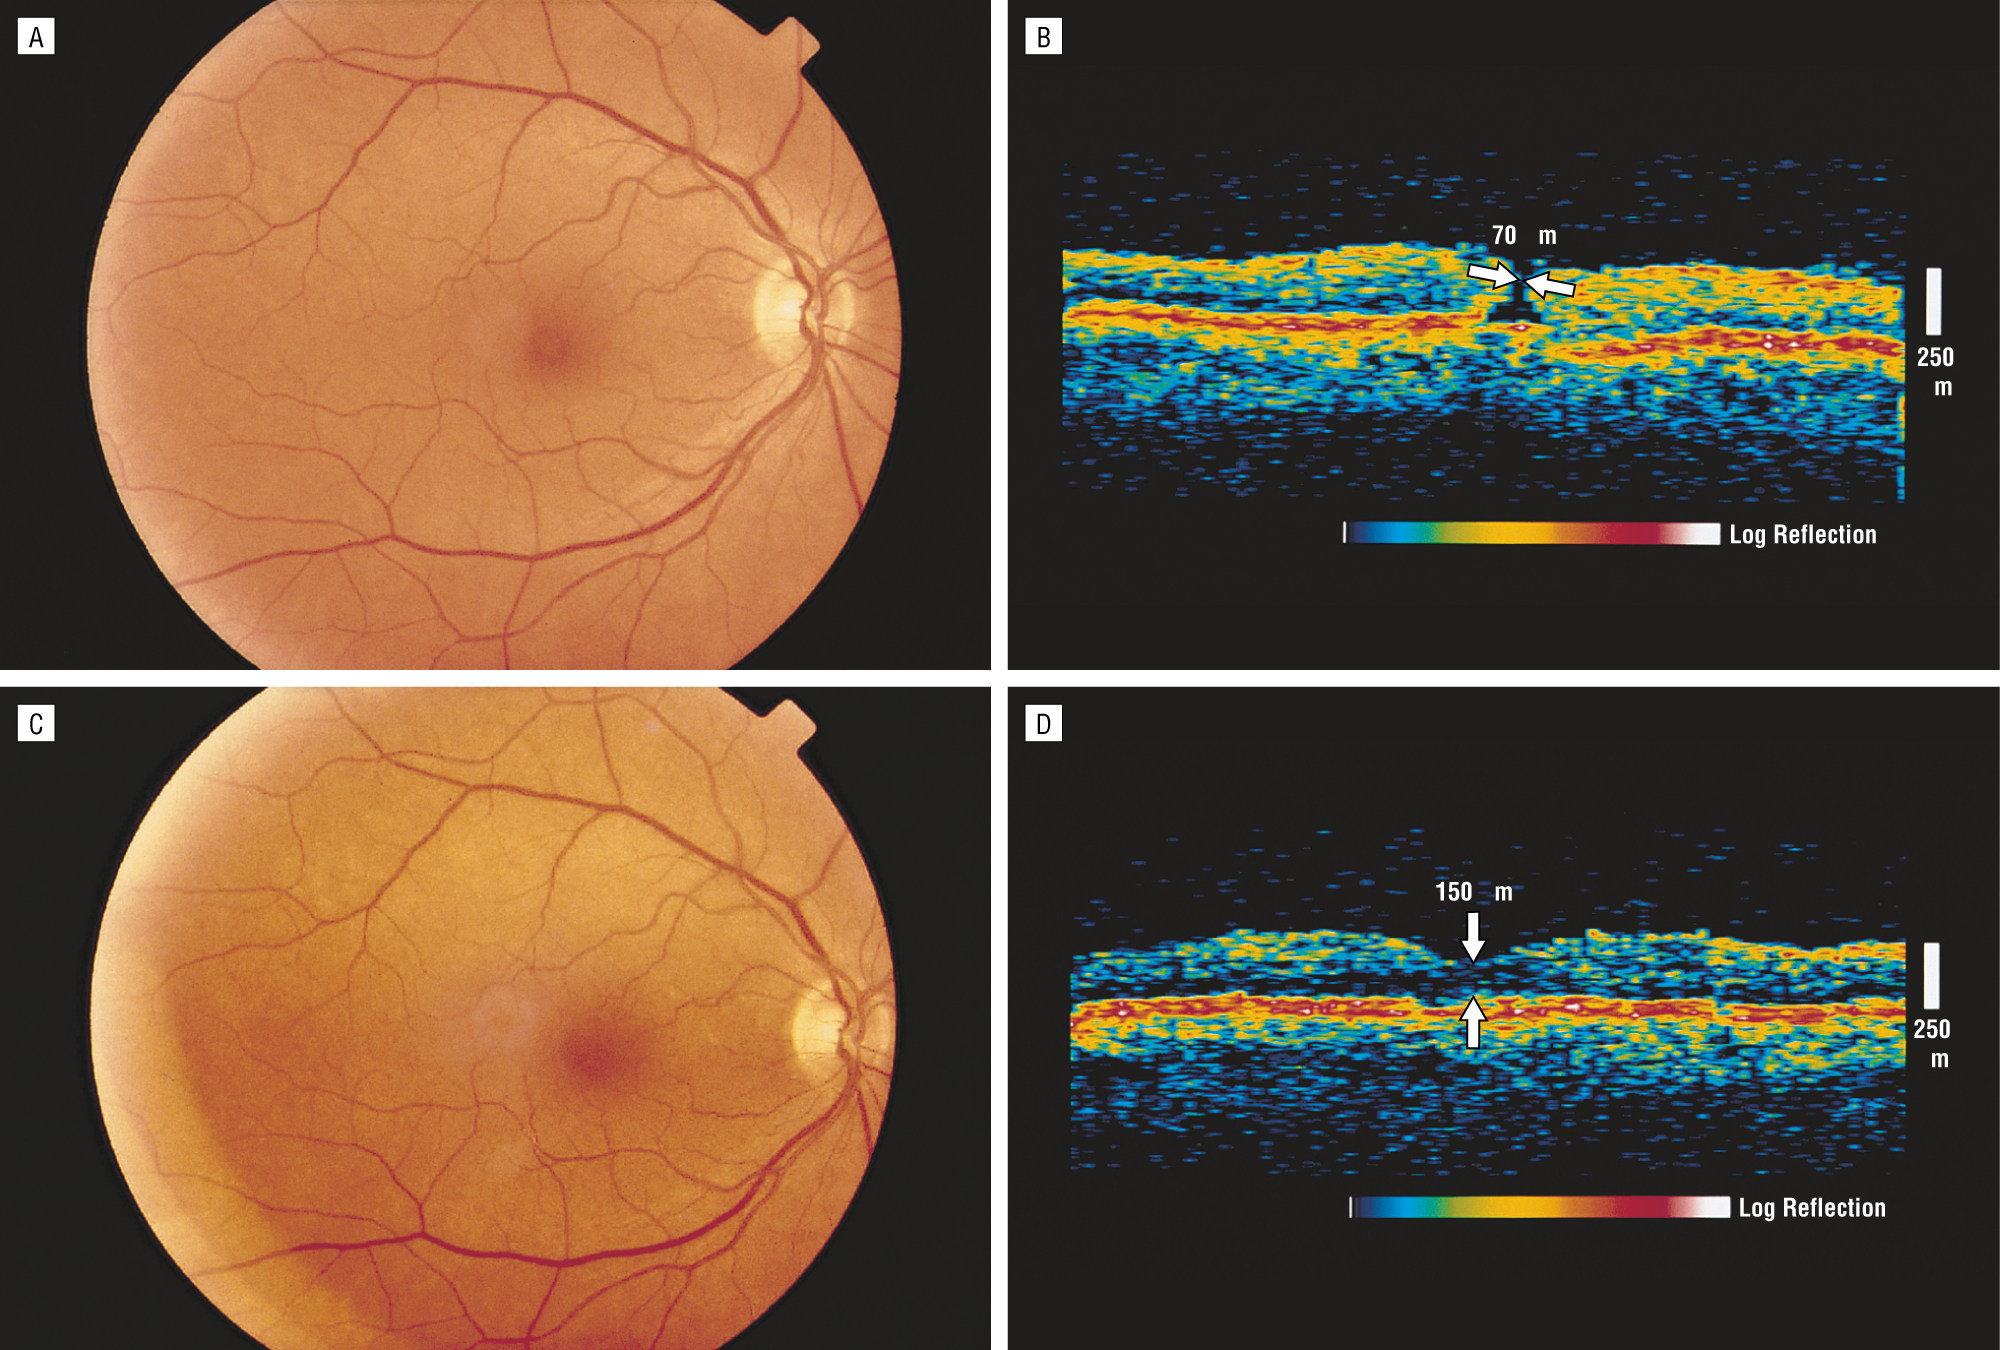 Anatomical Outcomes Of Surgery For Idiopathic Macular Hole As